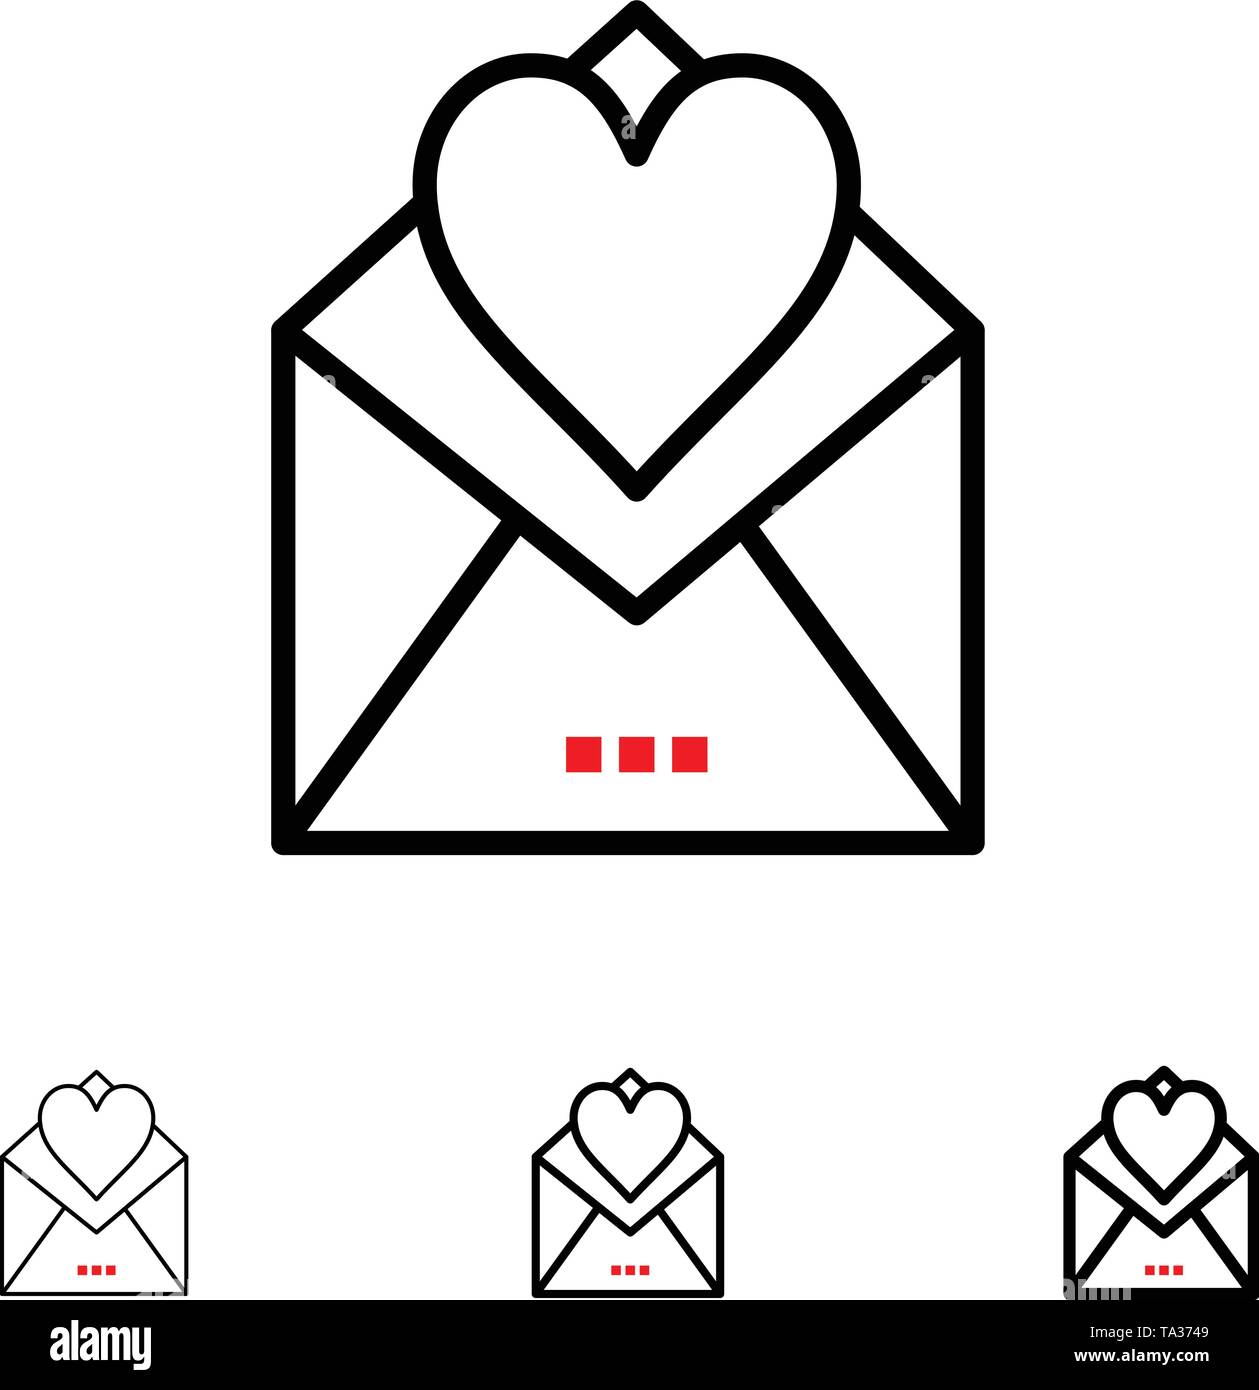 Letter, Mail, Card, Love Letter, Love Bold and thin black line icon set - Stock Image